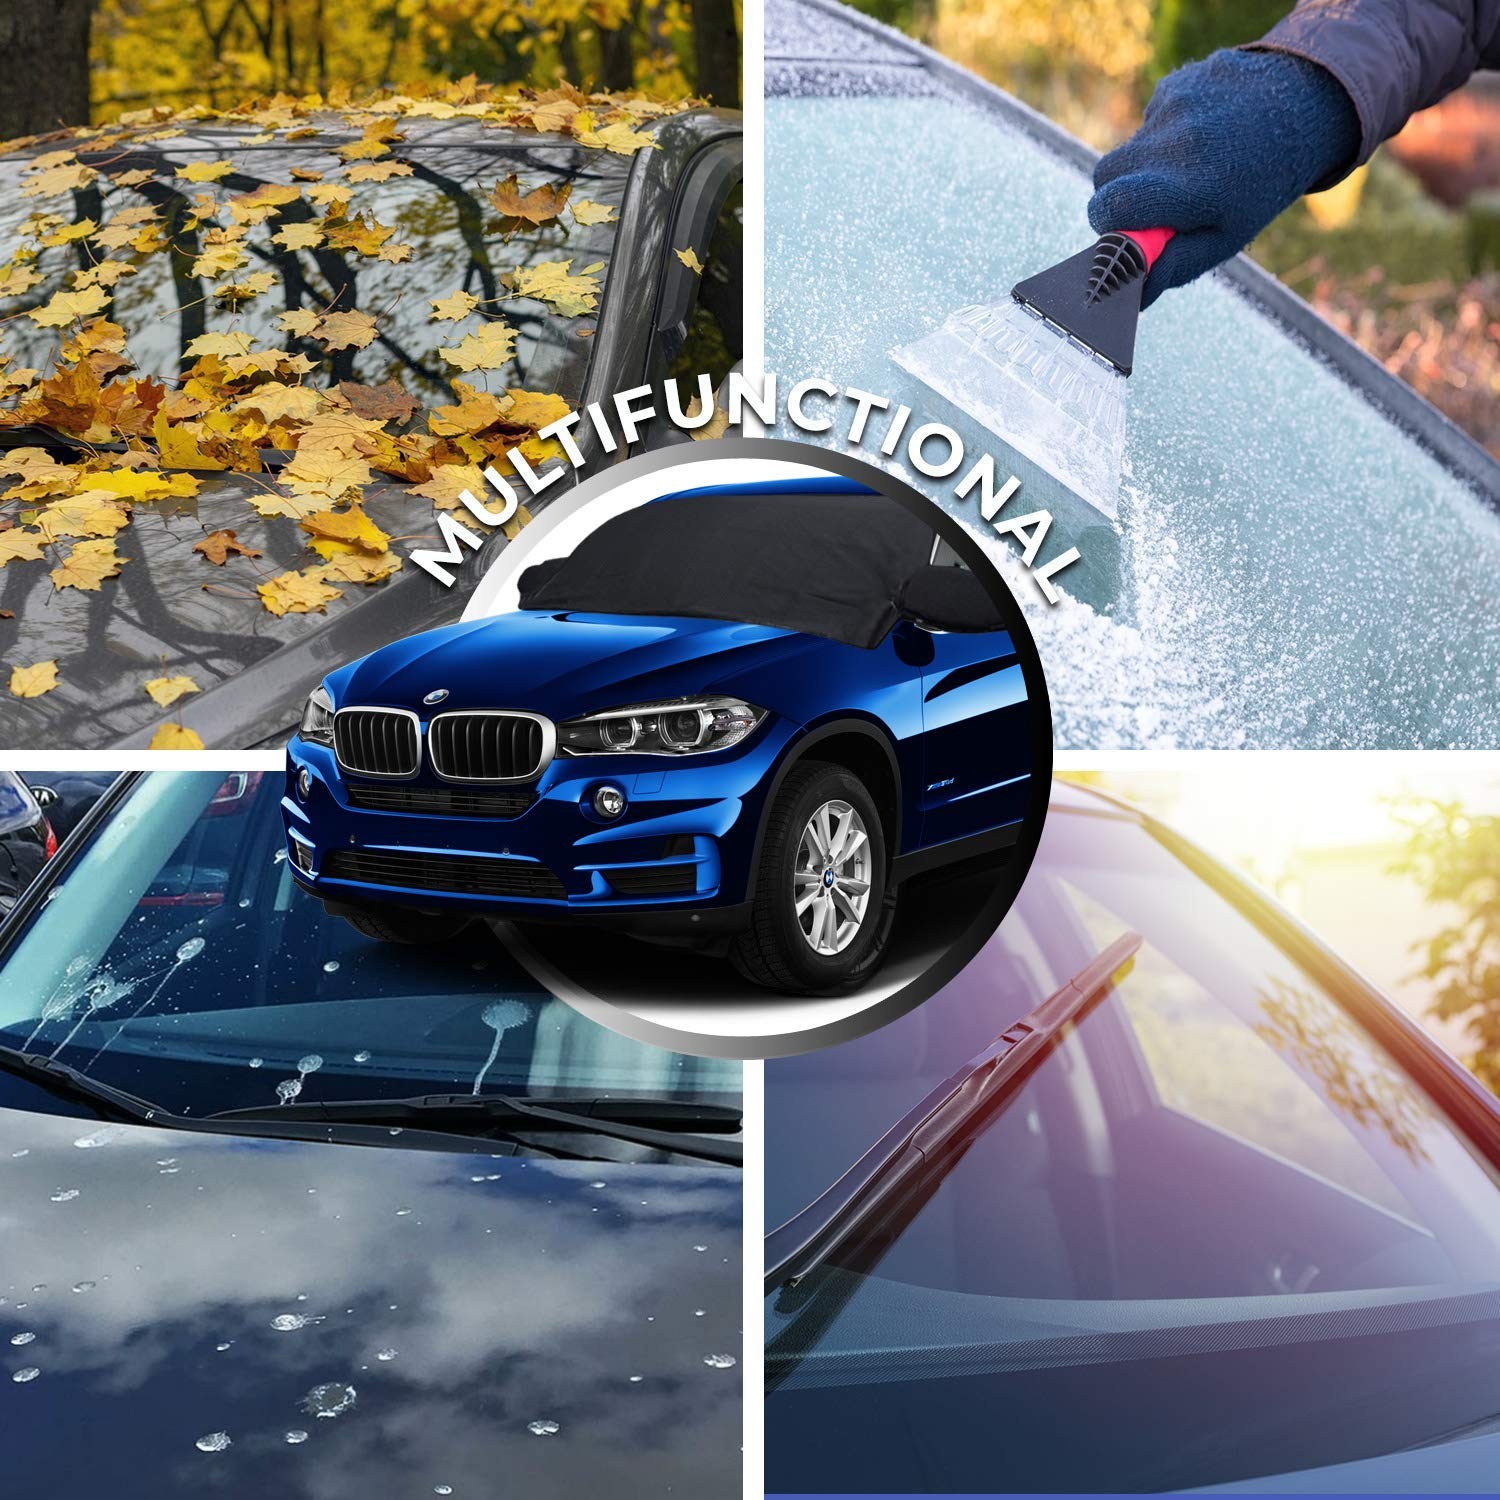 Z-H-C Car Windshield Snow Cover Truck Blocking Snow Auto Snow Windshield Cover with Rearview Mirror Protector Cover Elastic Hooks Design Fits Most Car SUV UV Sun Rays 87x50 Fallen Leaves